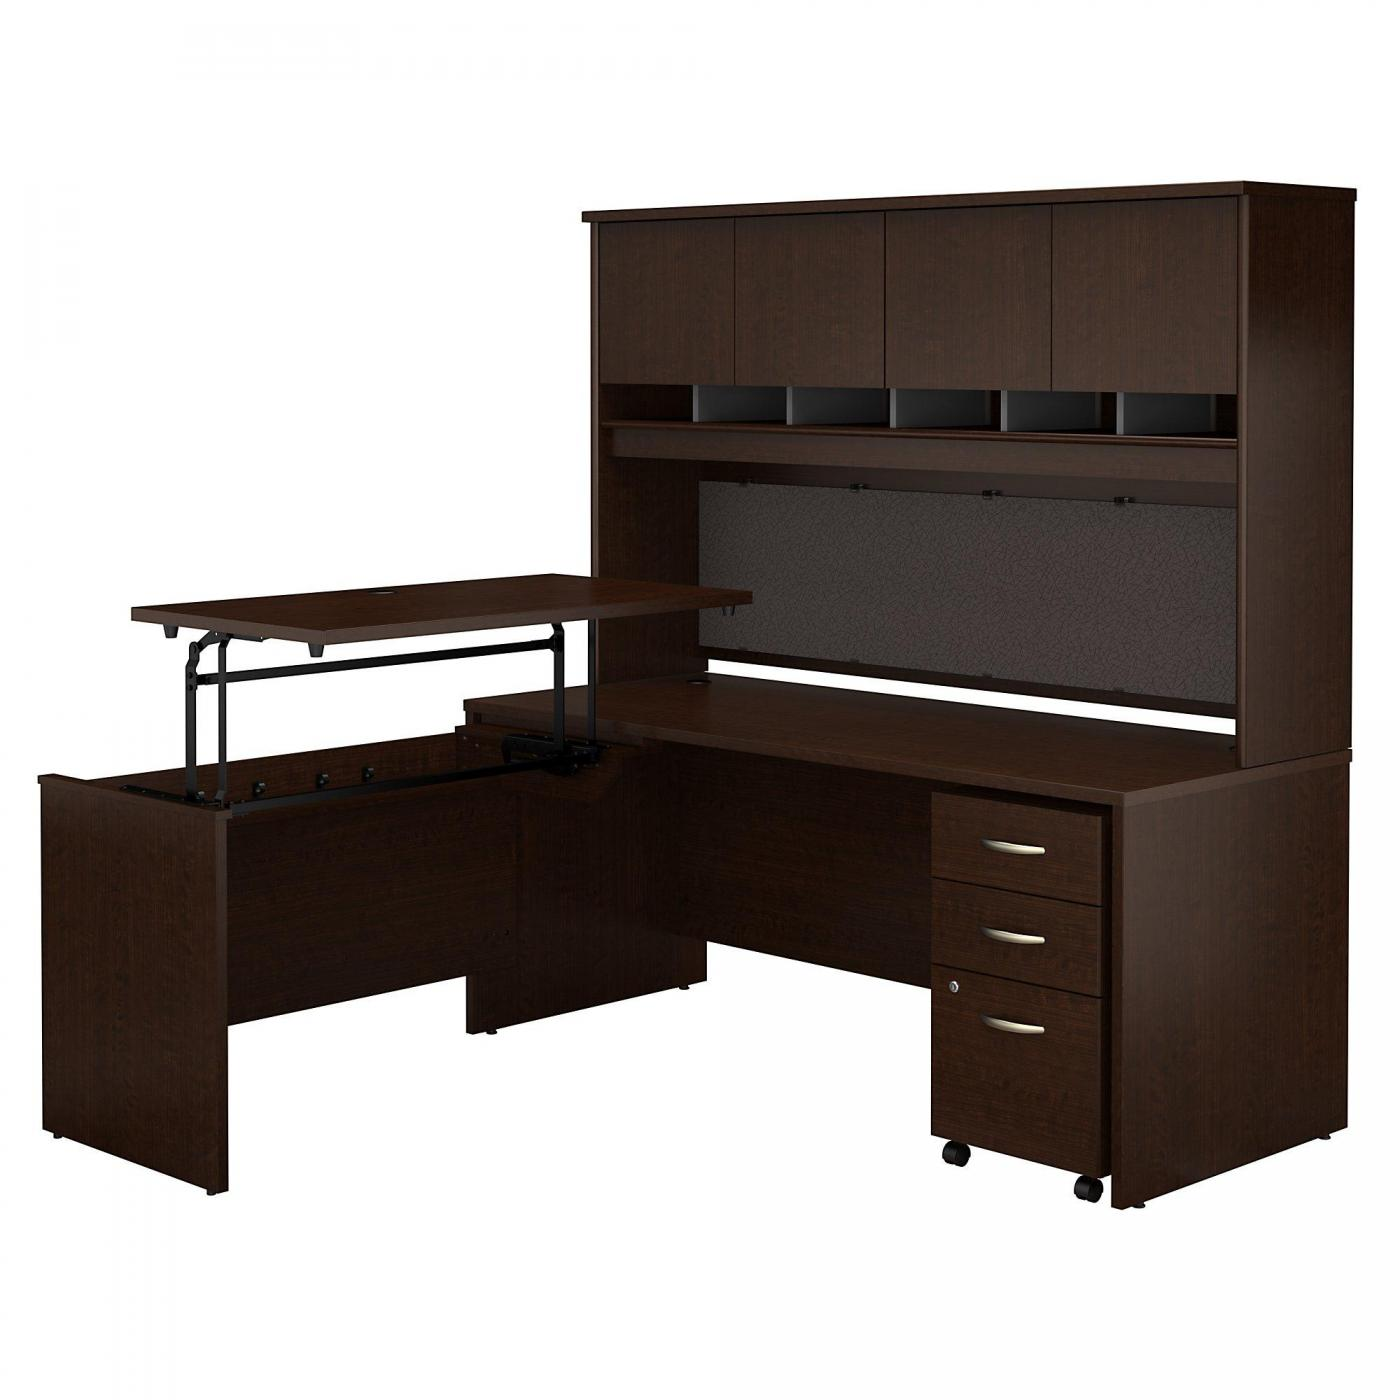 <font color=#c60><b>BUSH BUSINESS FURNITURE SERIES C 72W X 30D 3 POSITION SIT TO STAND L SHAPED DESK WITH HUTCH AND MOBILE FILE CABINET. FREE SHIPPING</font></b>